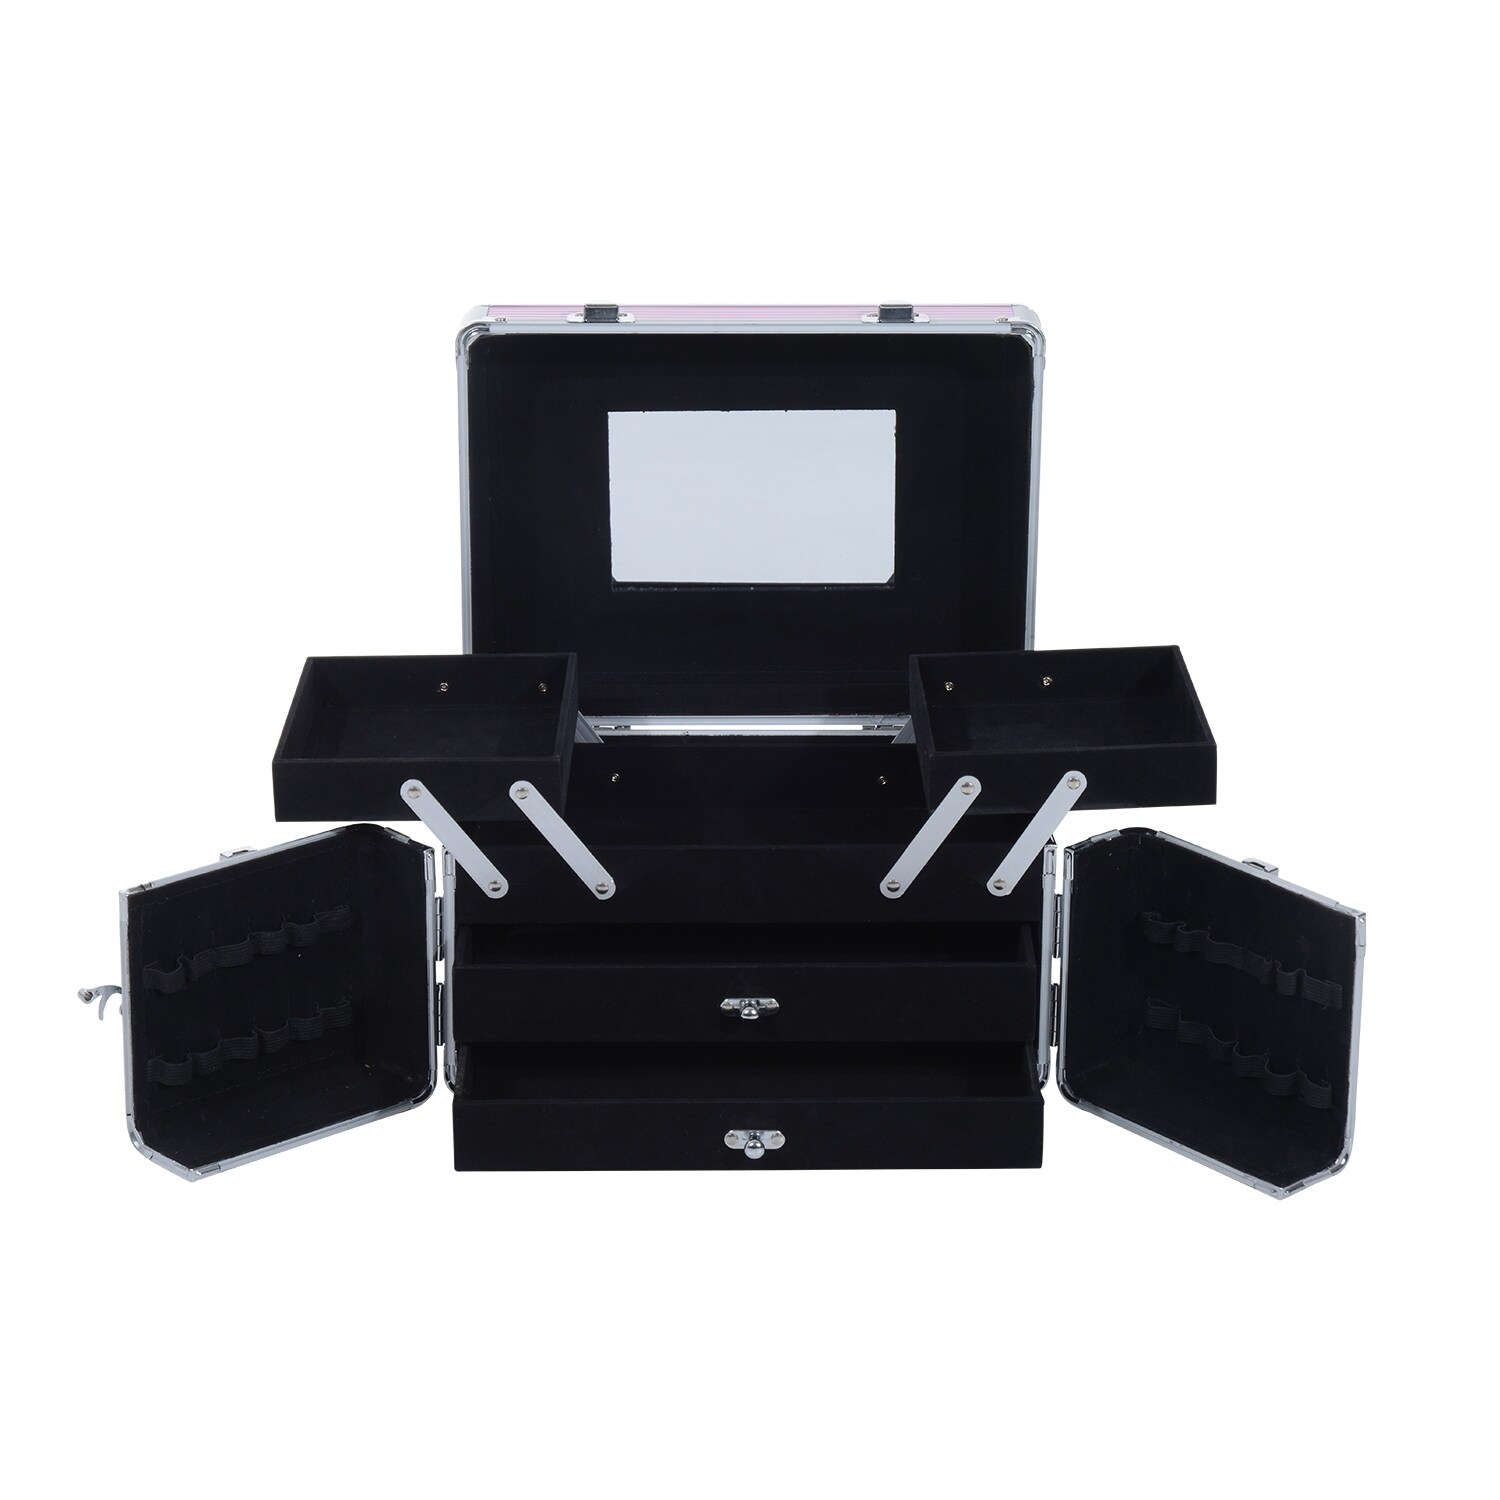 0215610712ad Soozier 3 Tier Lockable Cosmetic Makeup Case with Extendable Trays